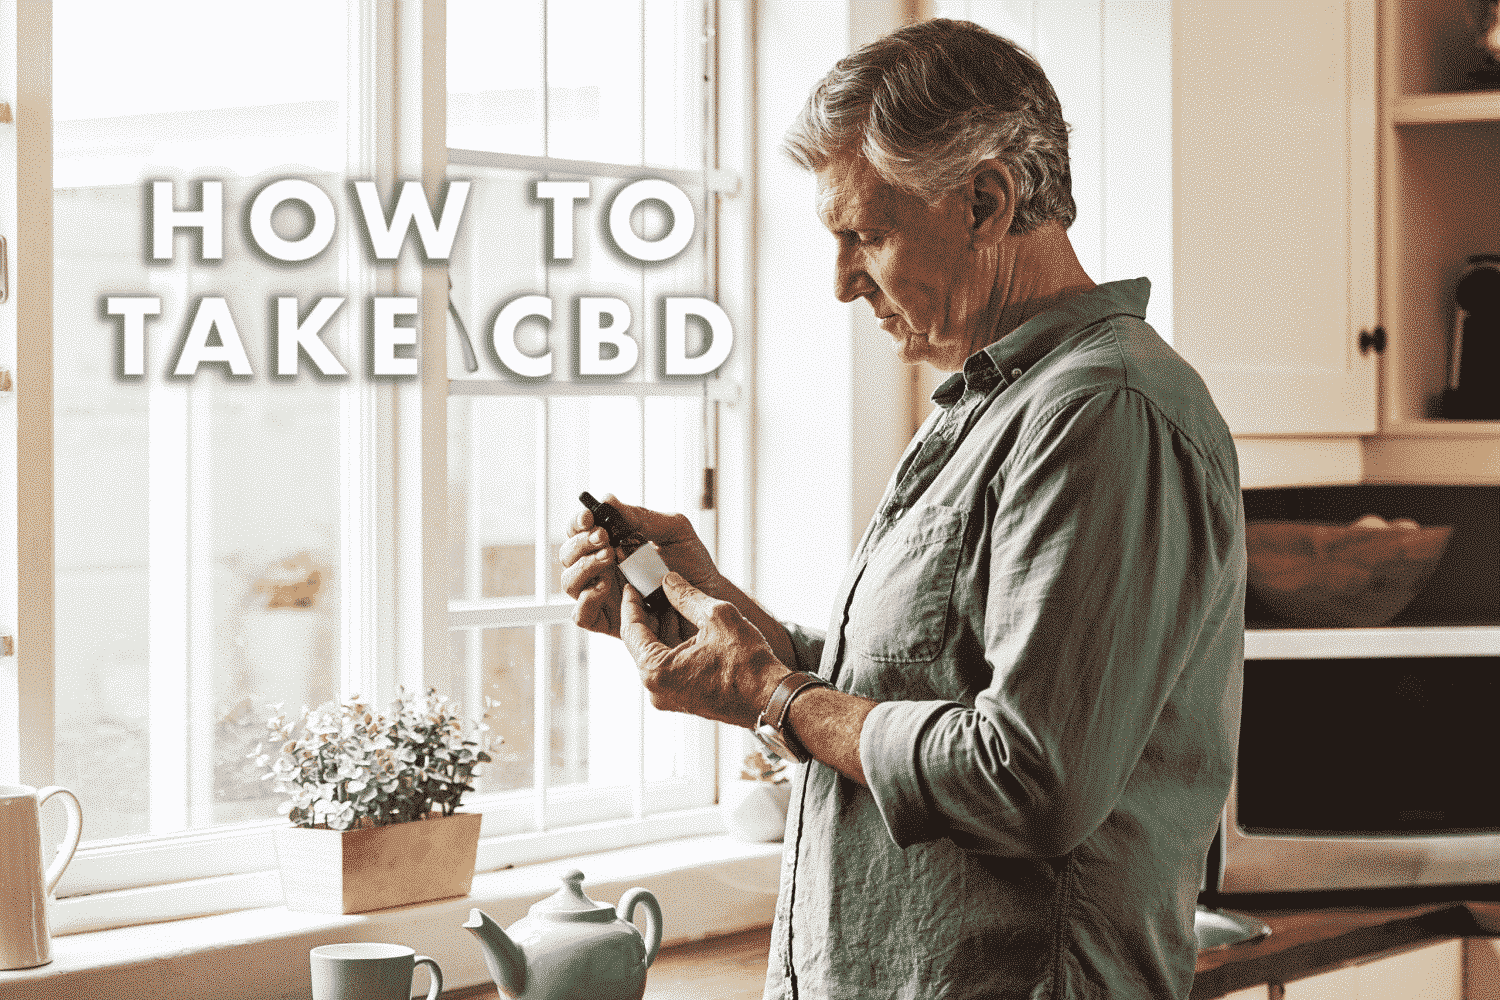 Cropped shot of a relaxed senior man preparing a cup of tea with CBD oil inside of it at home during the day, showing how to take CBD